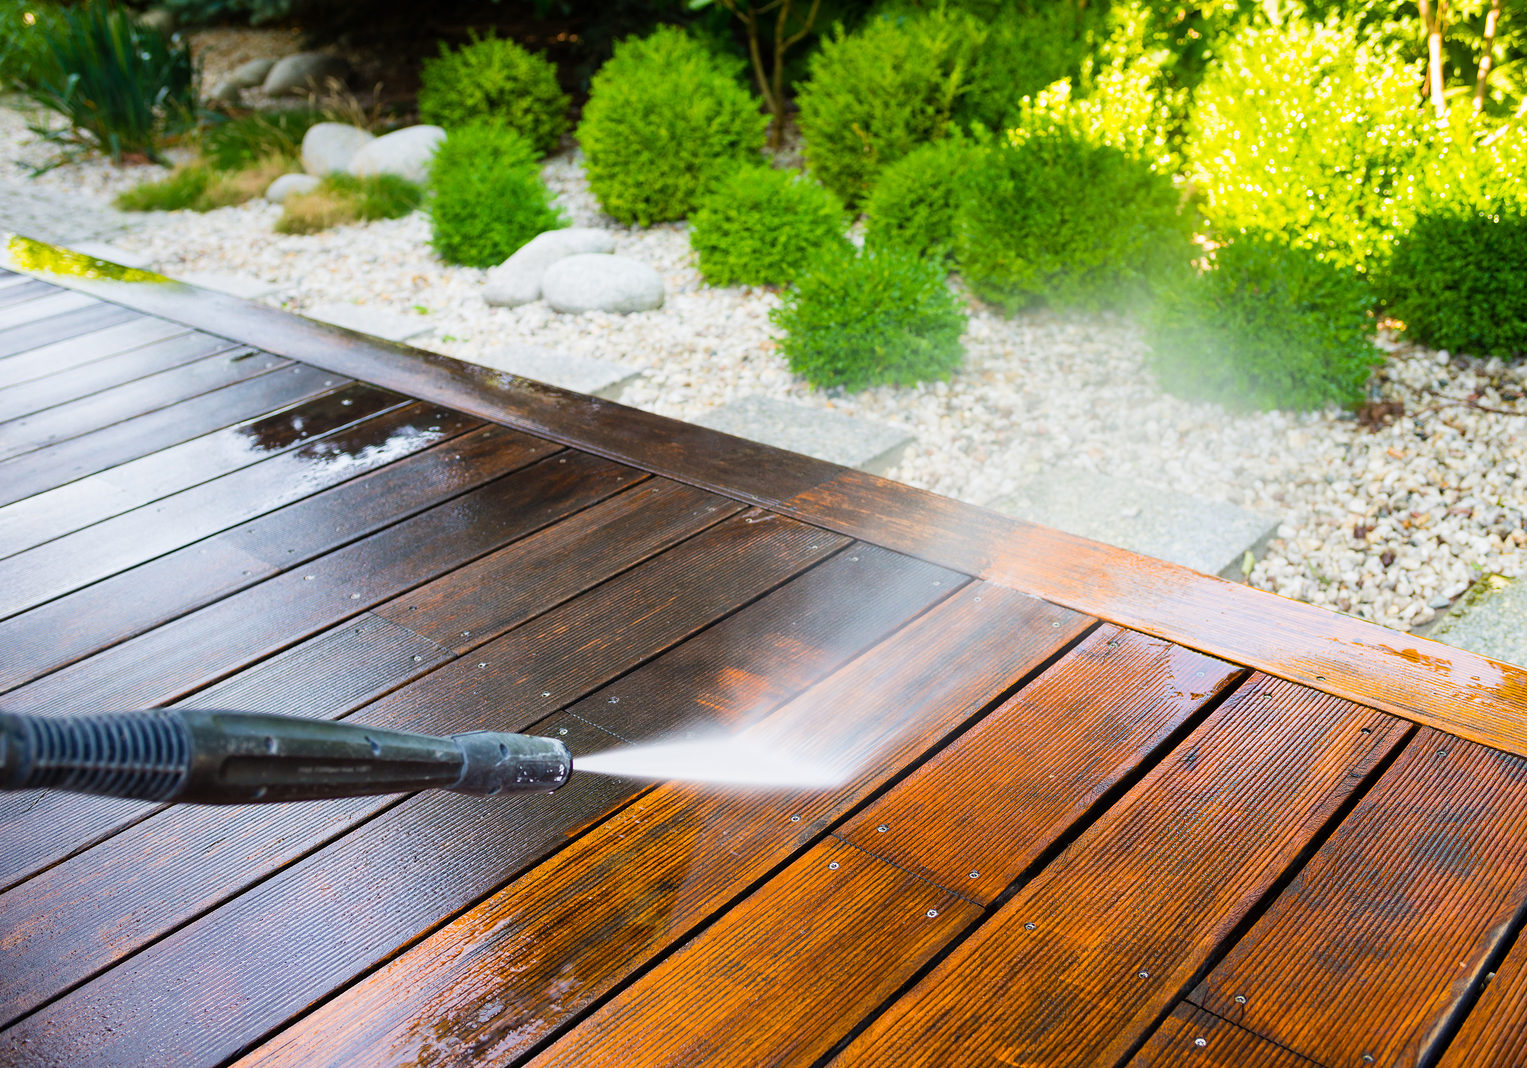 Cleaning Terrace With A Washer High Water Pressure Cleaner On Wooden Surface